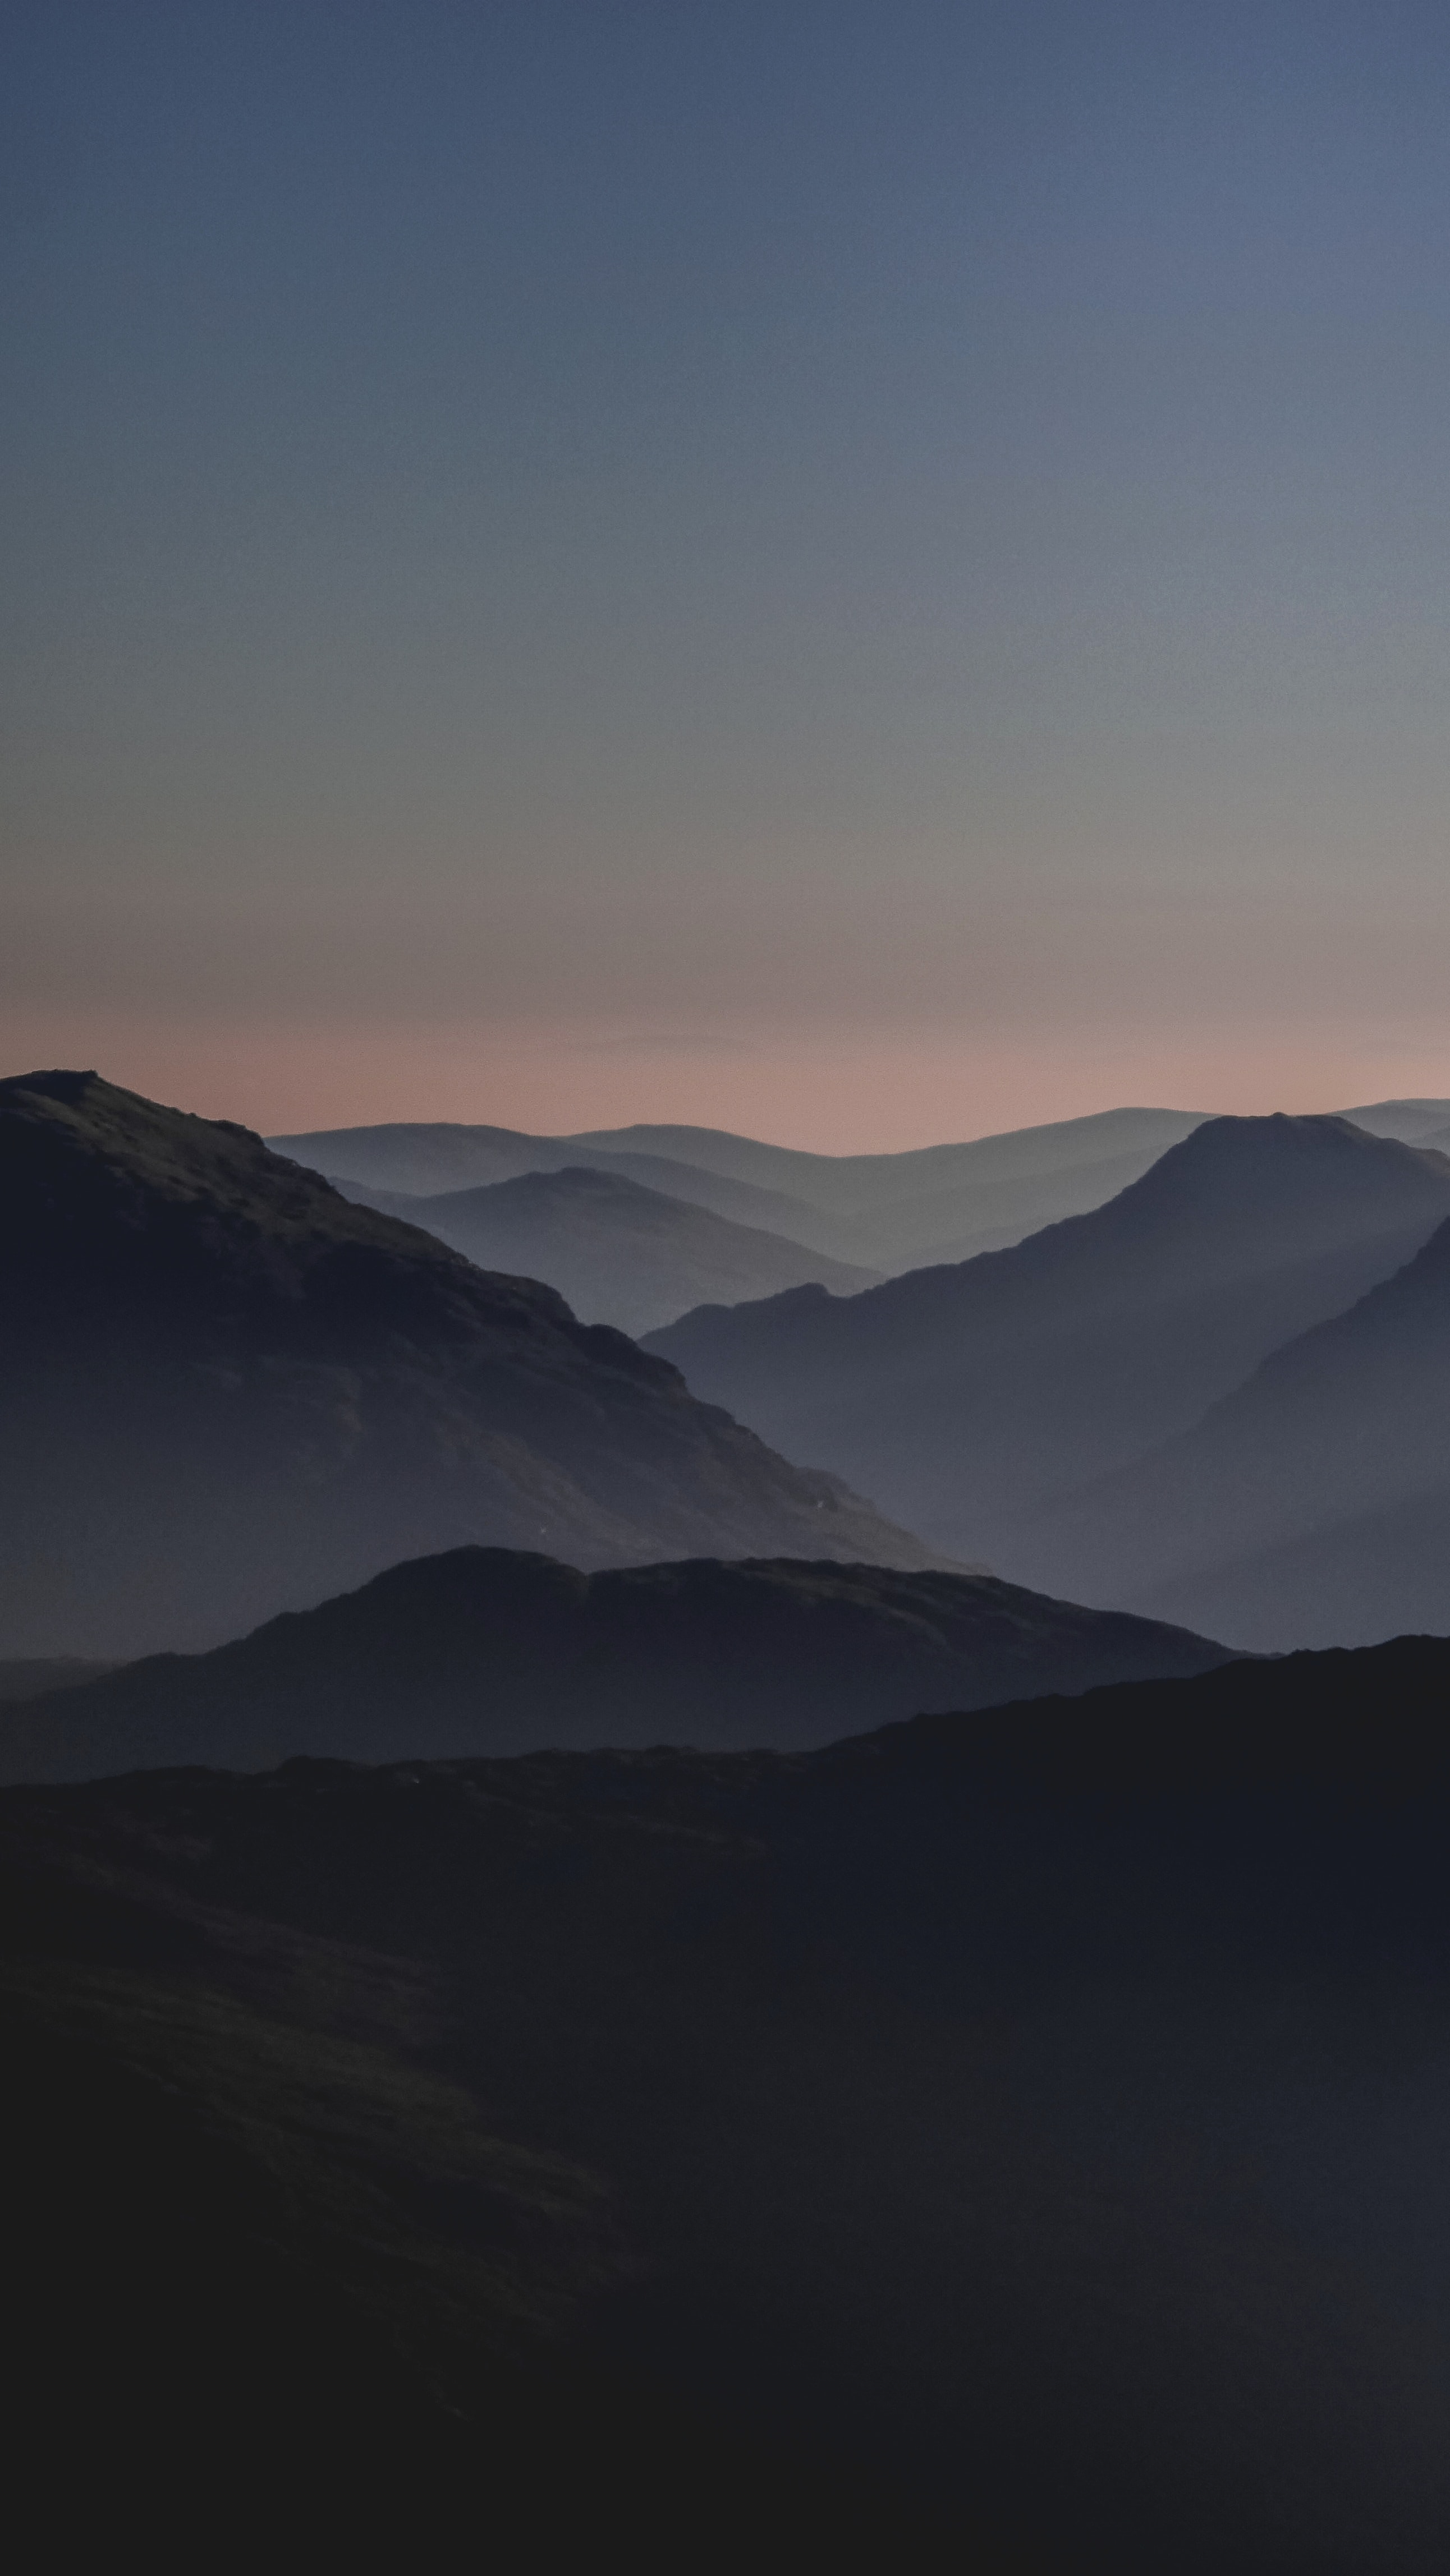 mountains during golden hour